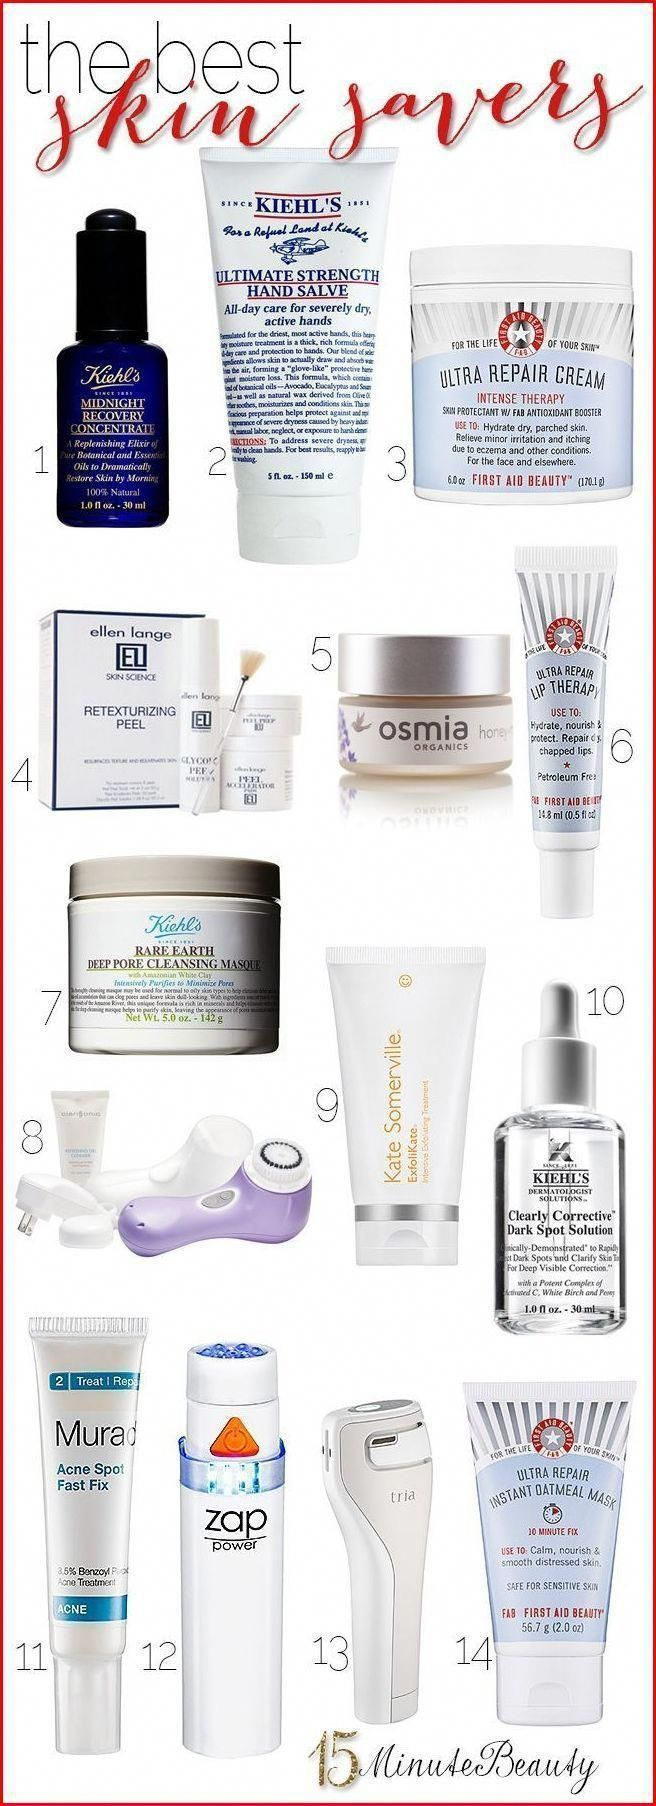 Best Skin Care Regimen For 20 Year Olds Best Skin Care Routine For 30 Year Olds Best Skin Care Routine In Yo Facial Skin Good Skin Anti Aging Skin Products